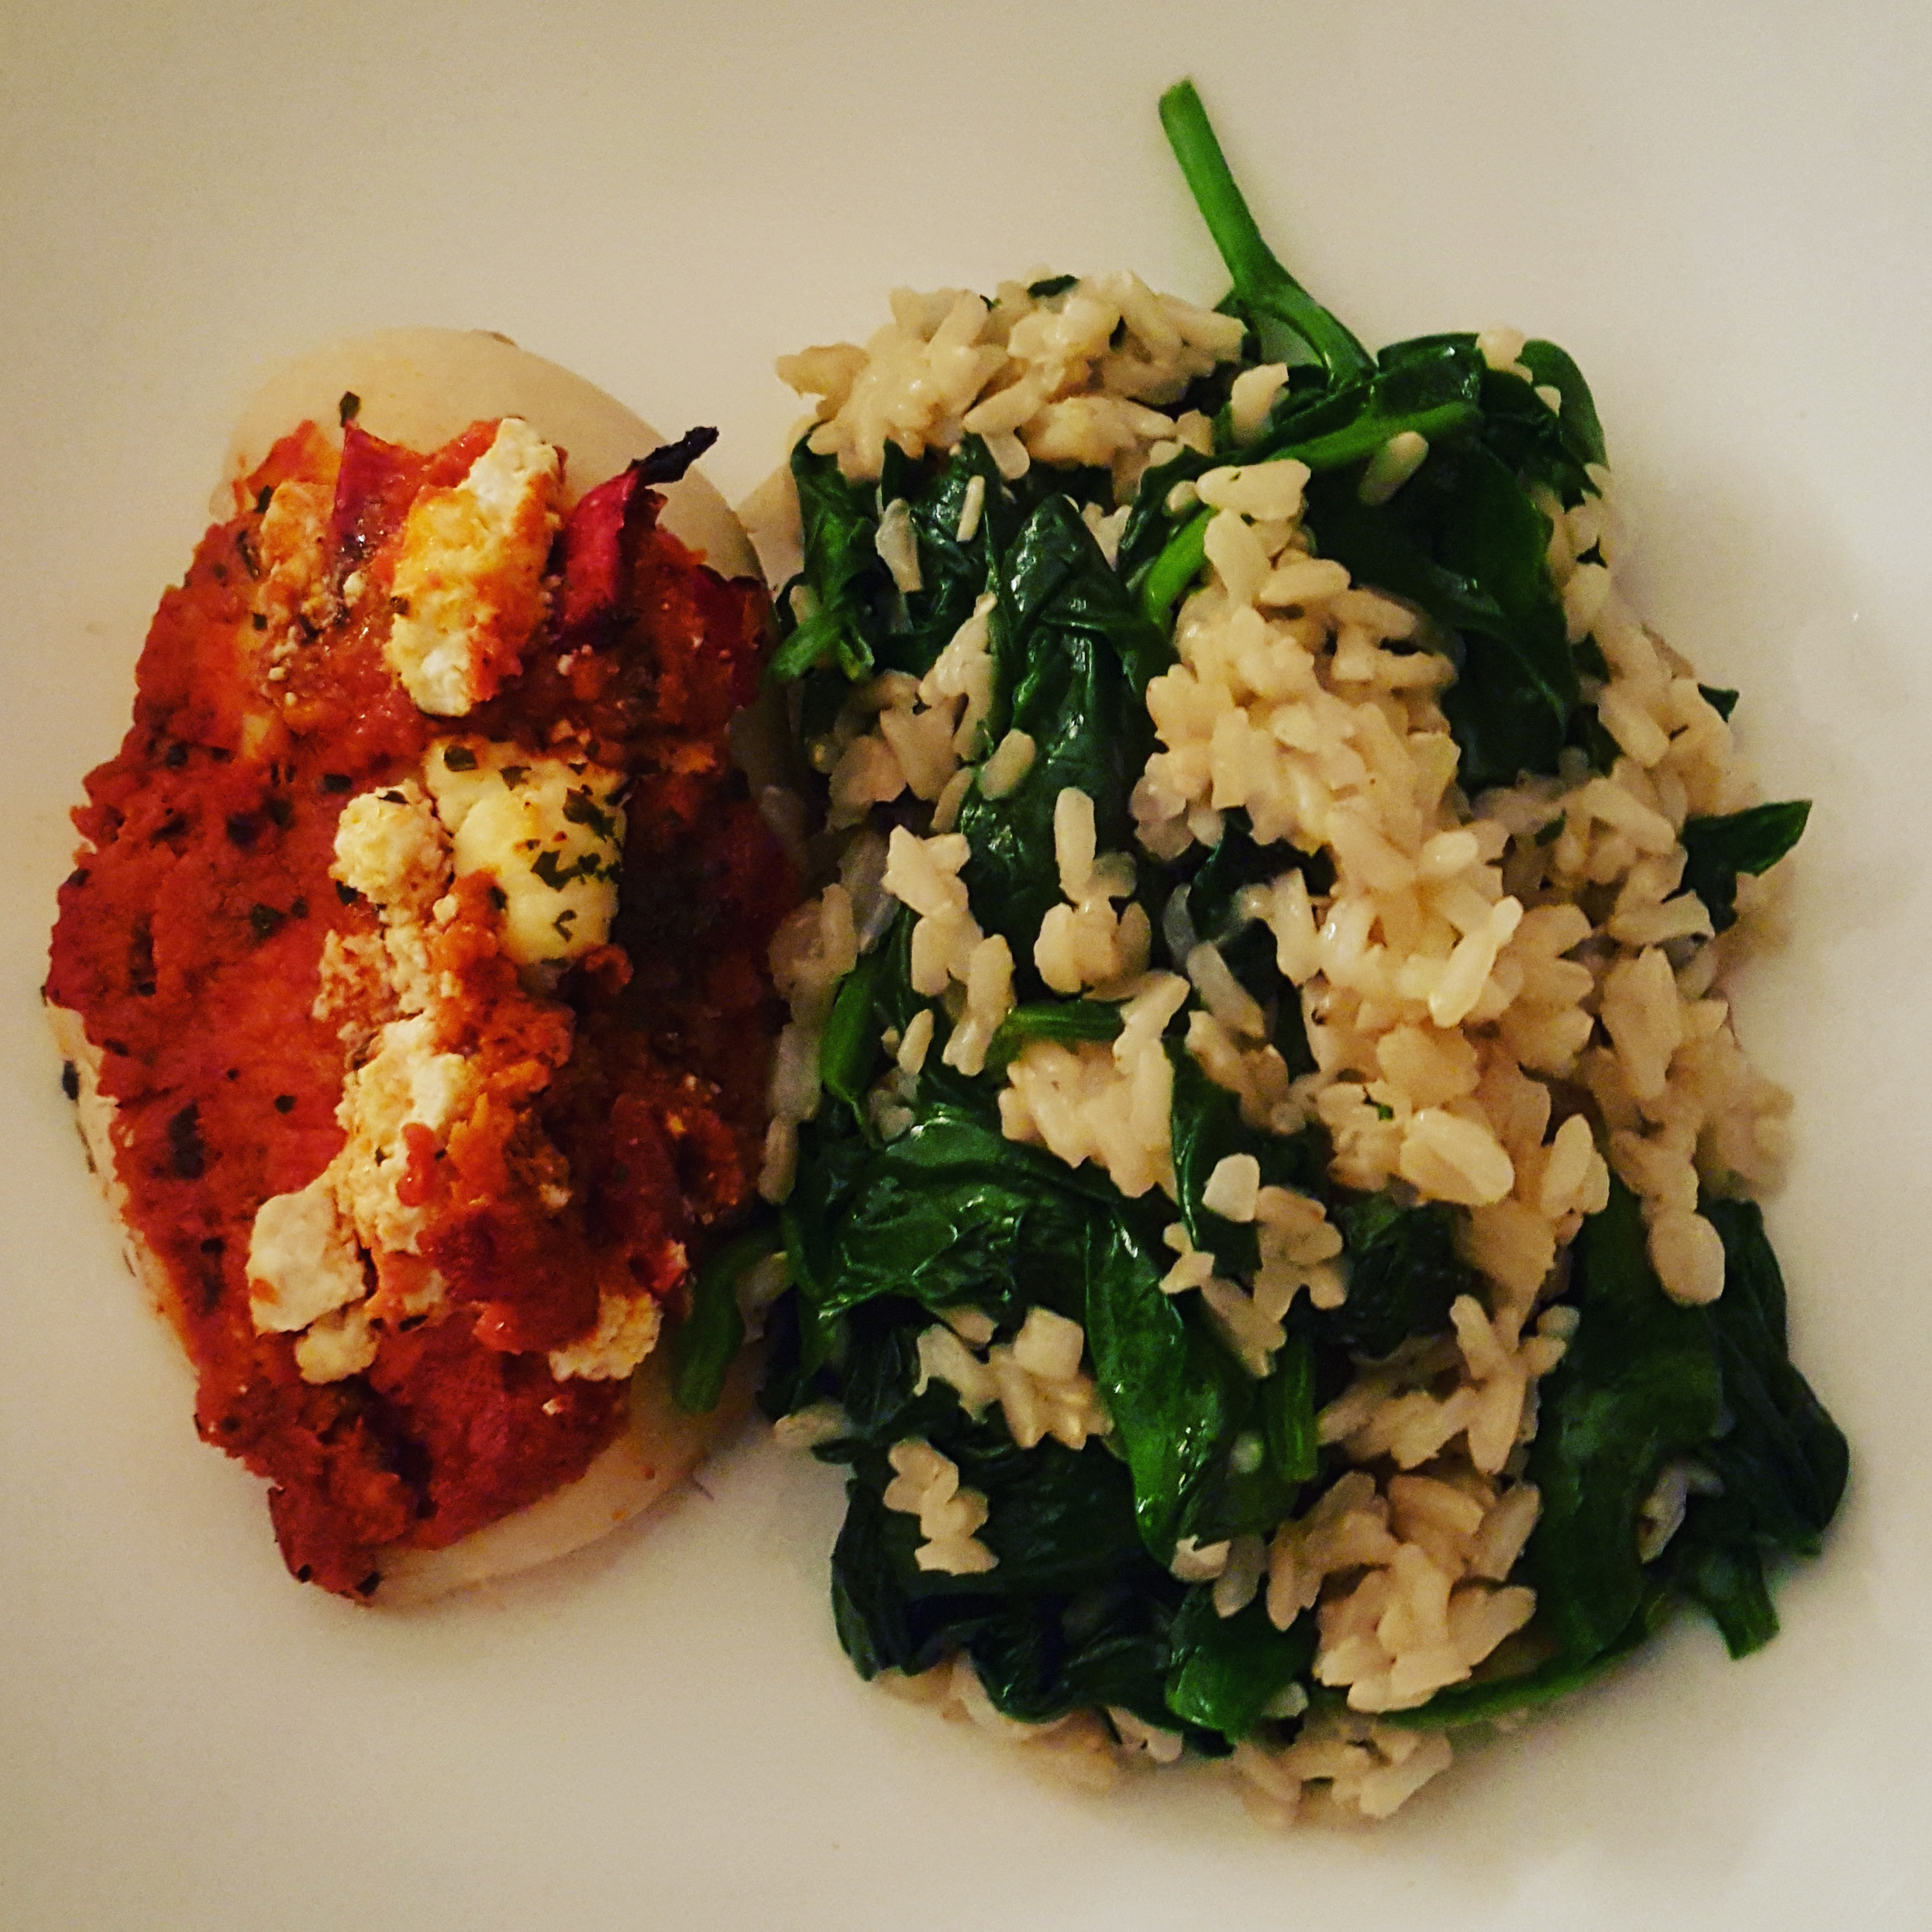 Sundried Chicken Breast with Spinach Brown Rice